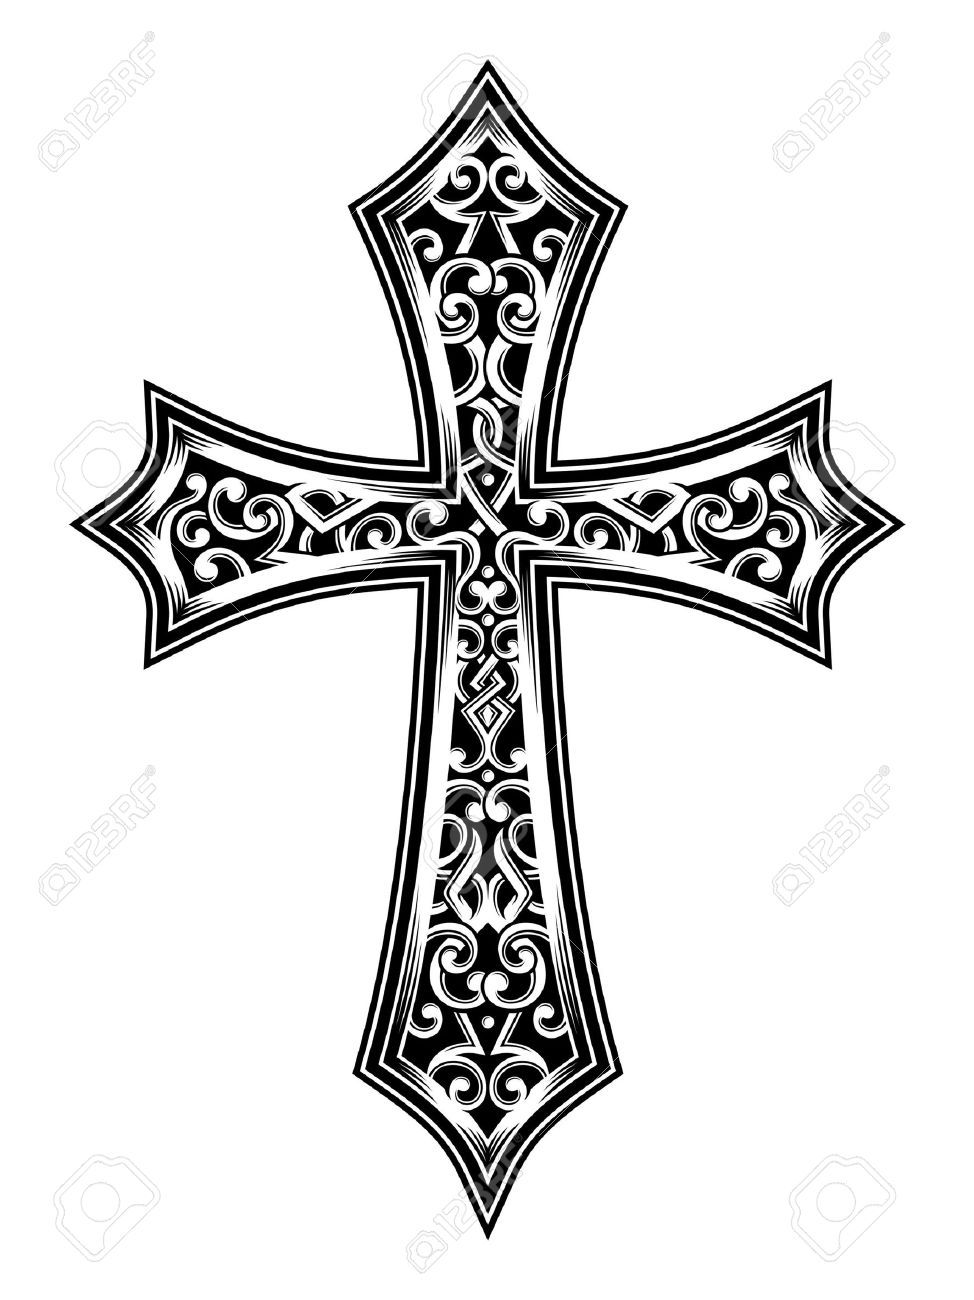 Pin on Crosses and Crucifixes.